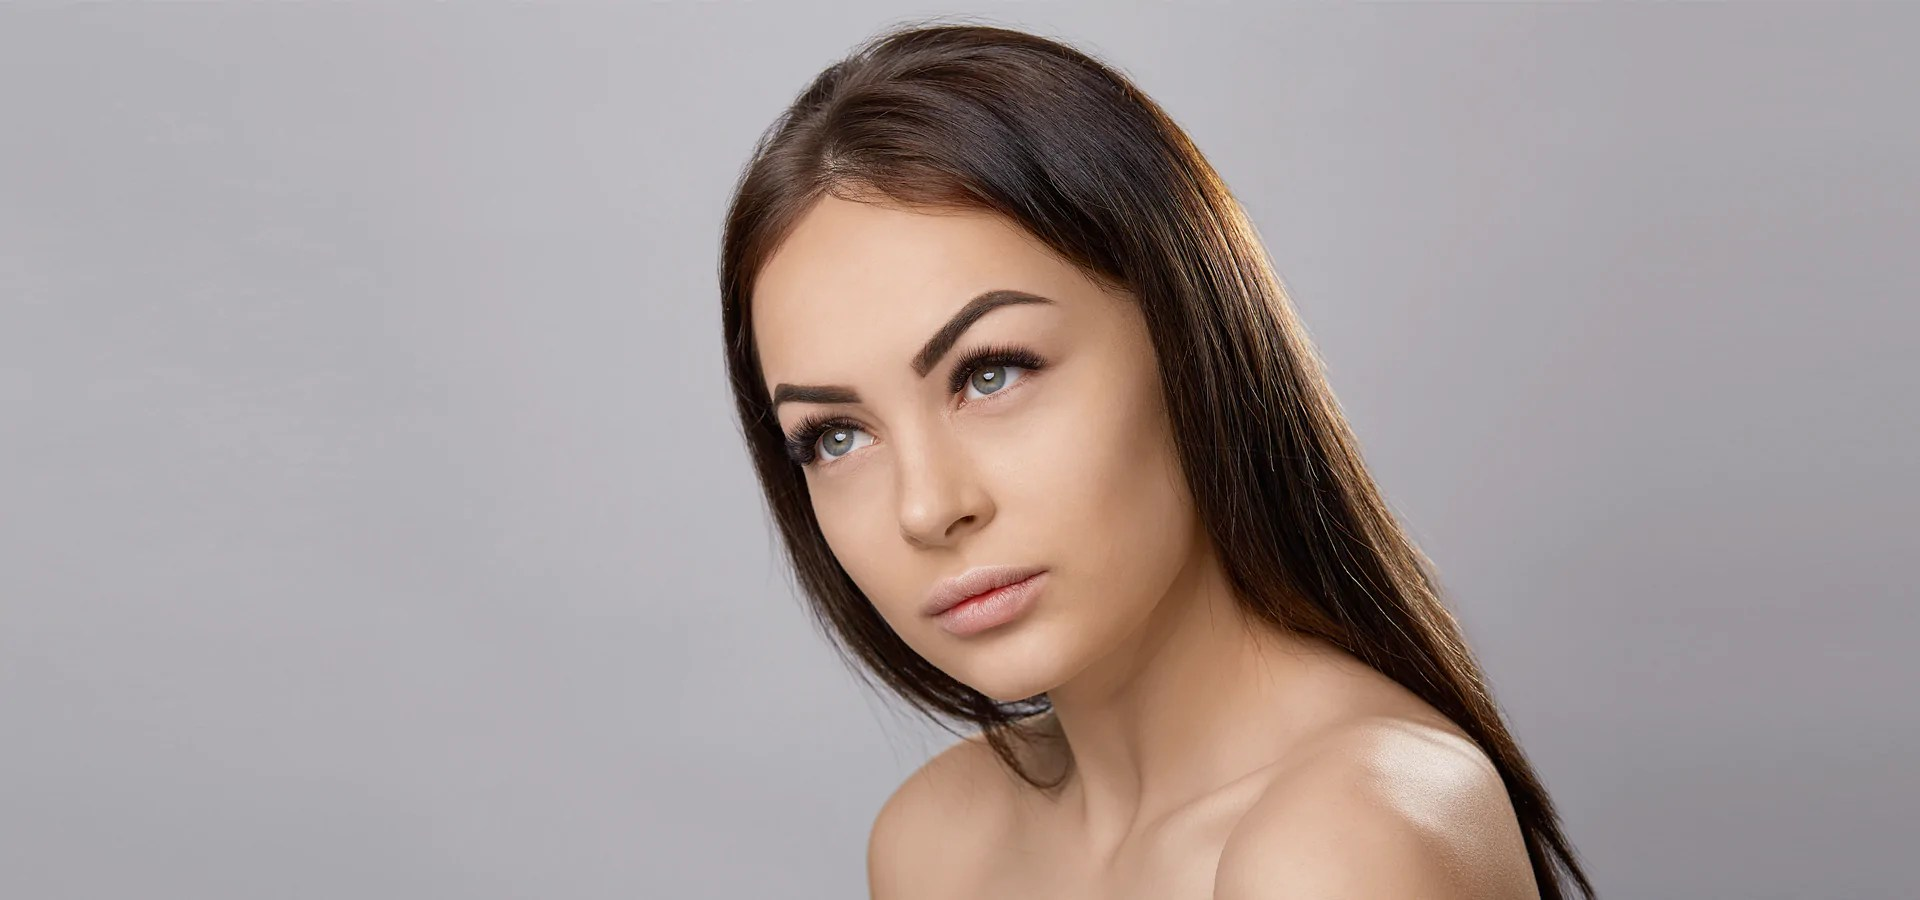 Makeup Training Australia The Academy Of Makeup Is The